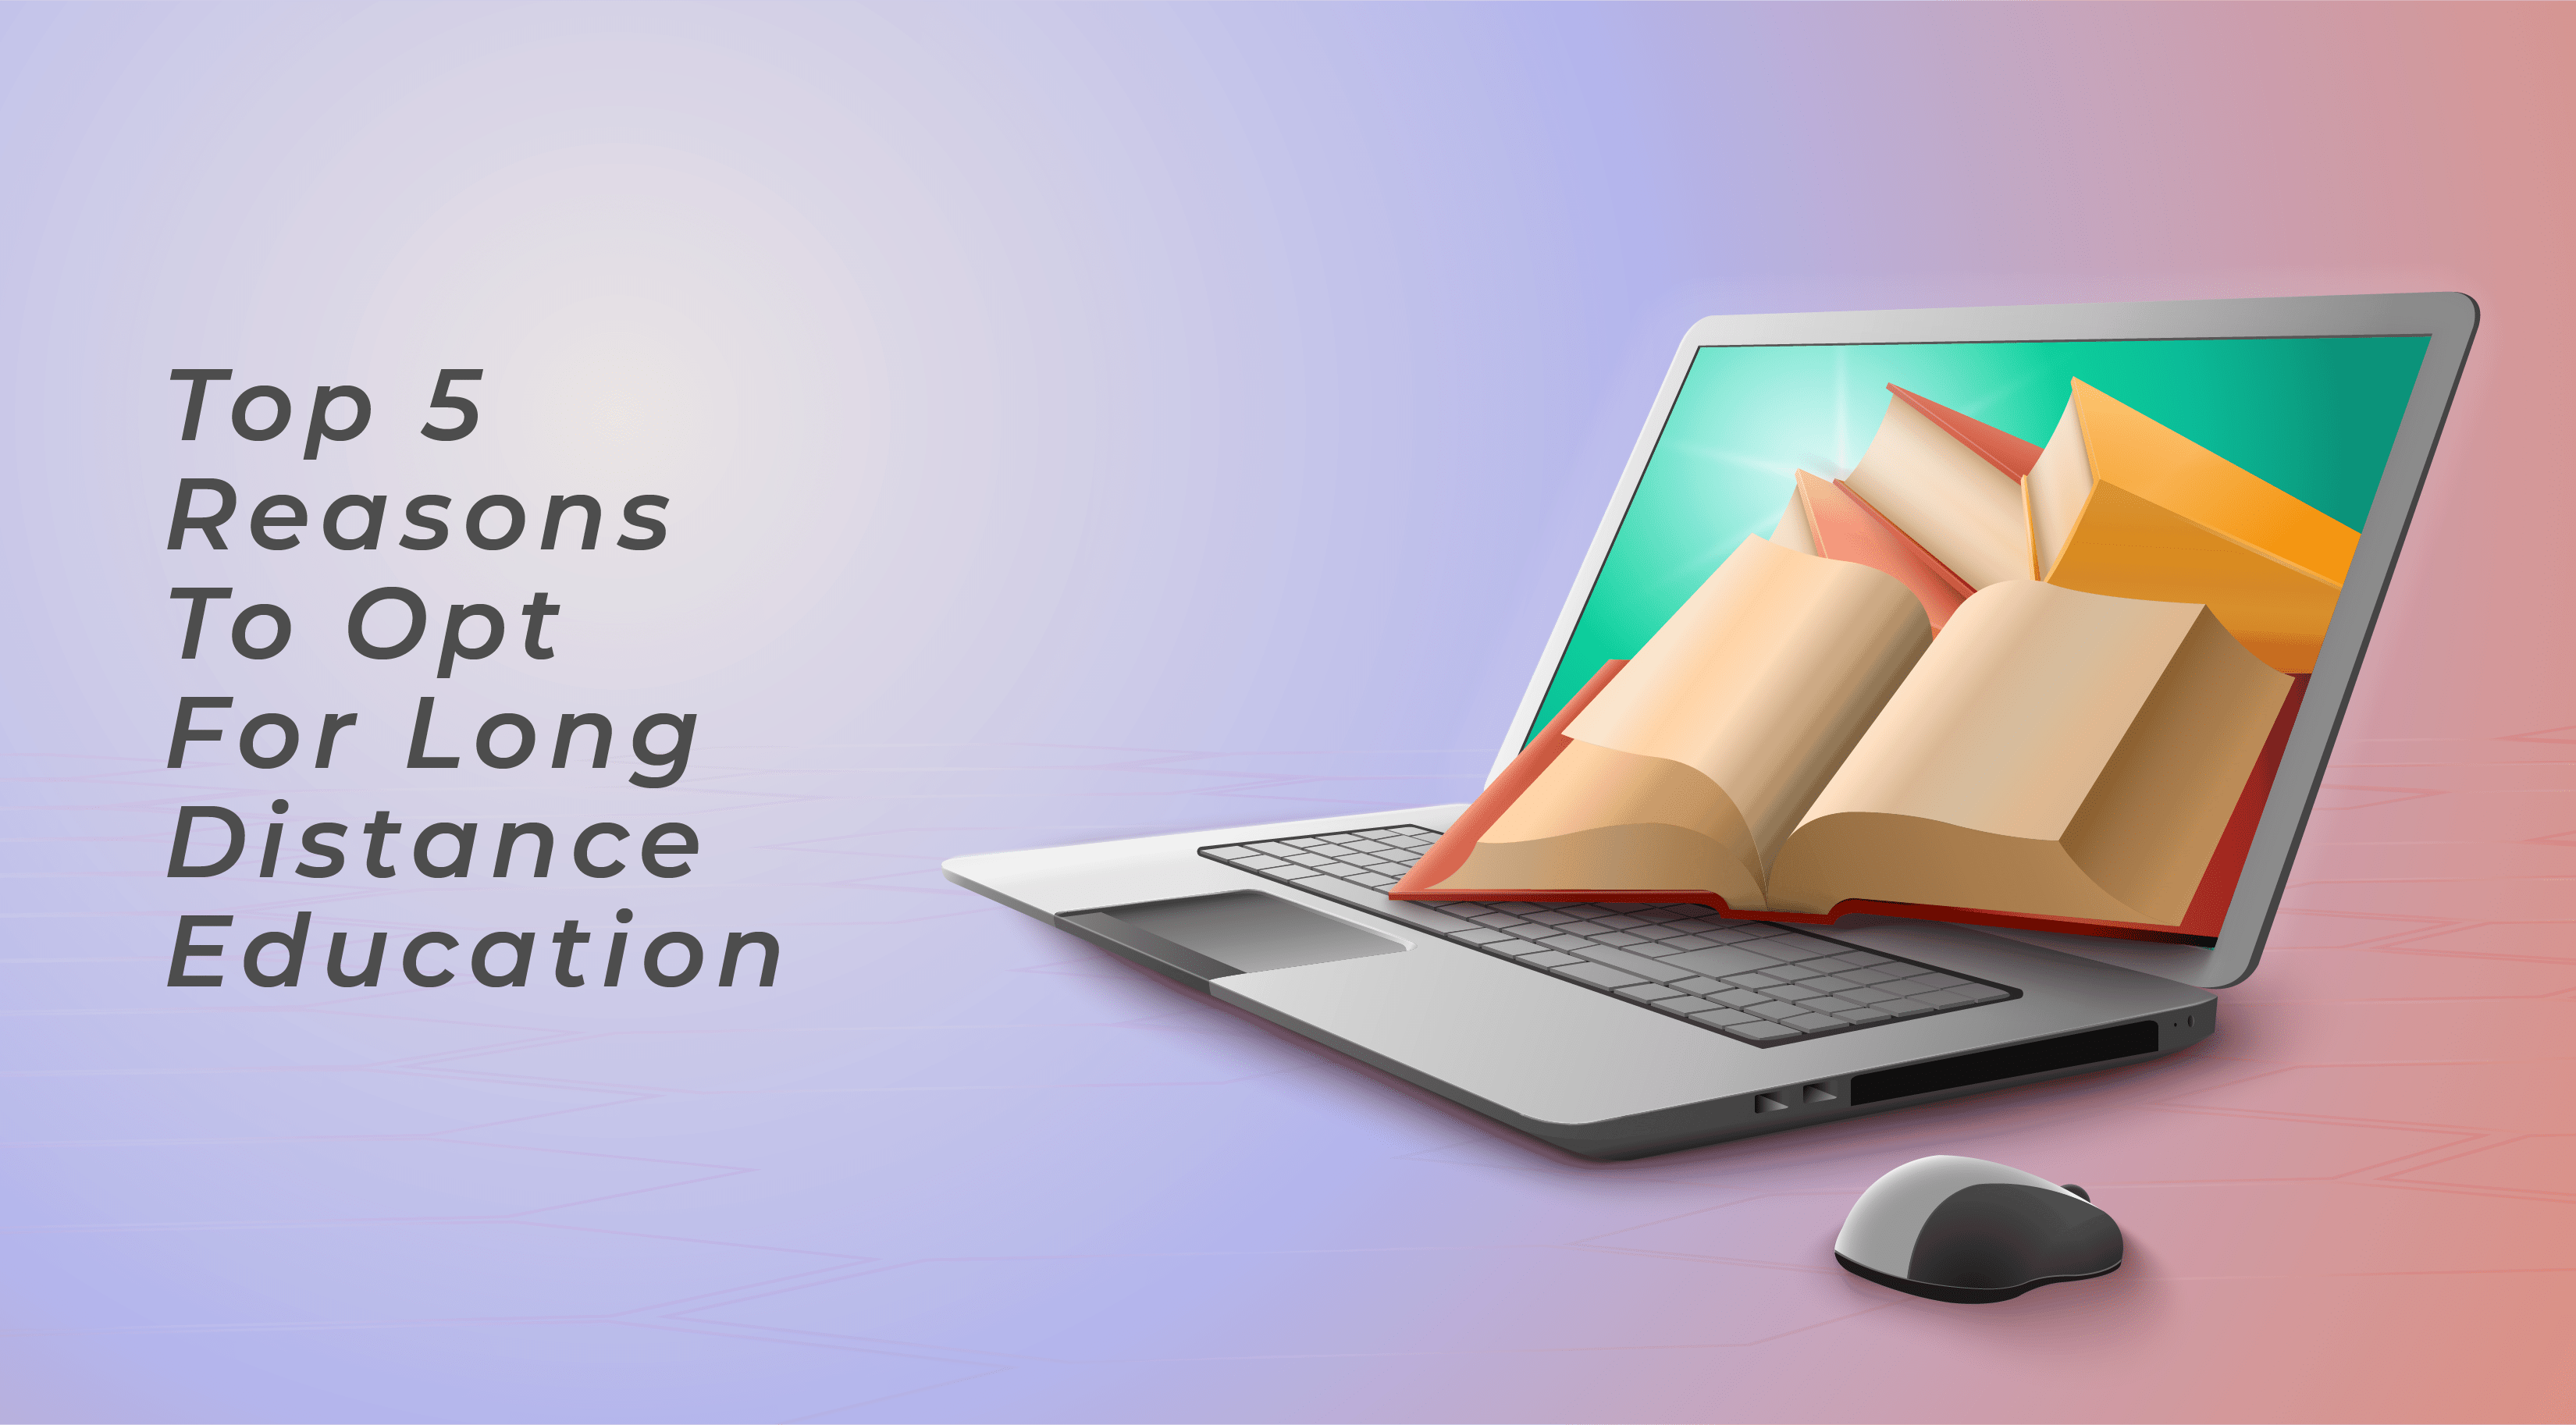 Photo of a laptop and image illustration of books symbioses long distance education